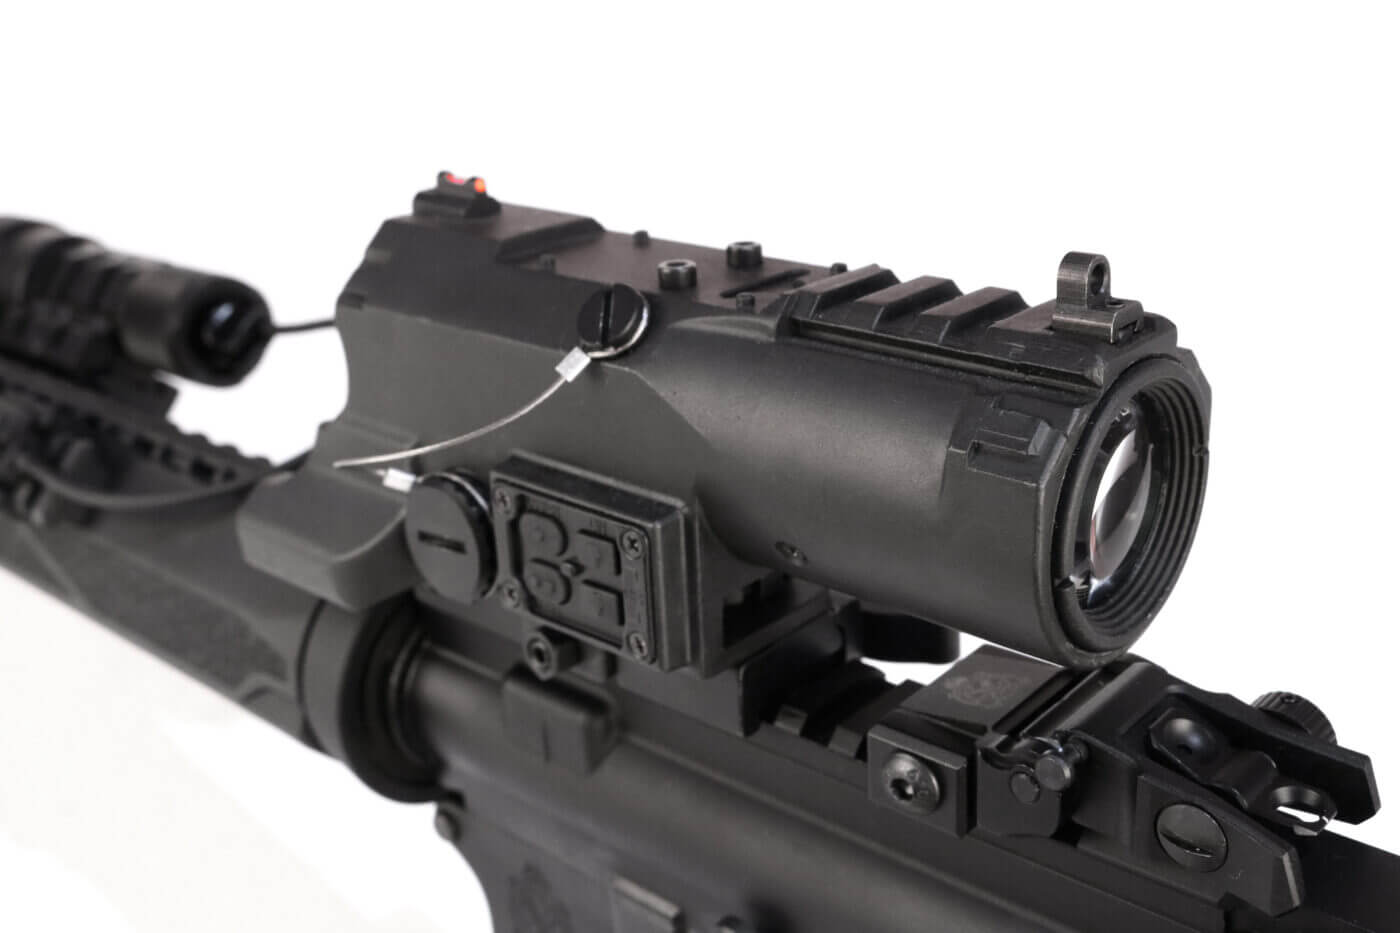 Forward view of the NcSTAR VISM ECO MOD2 optic